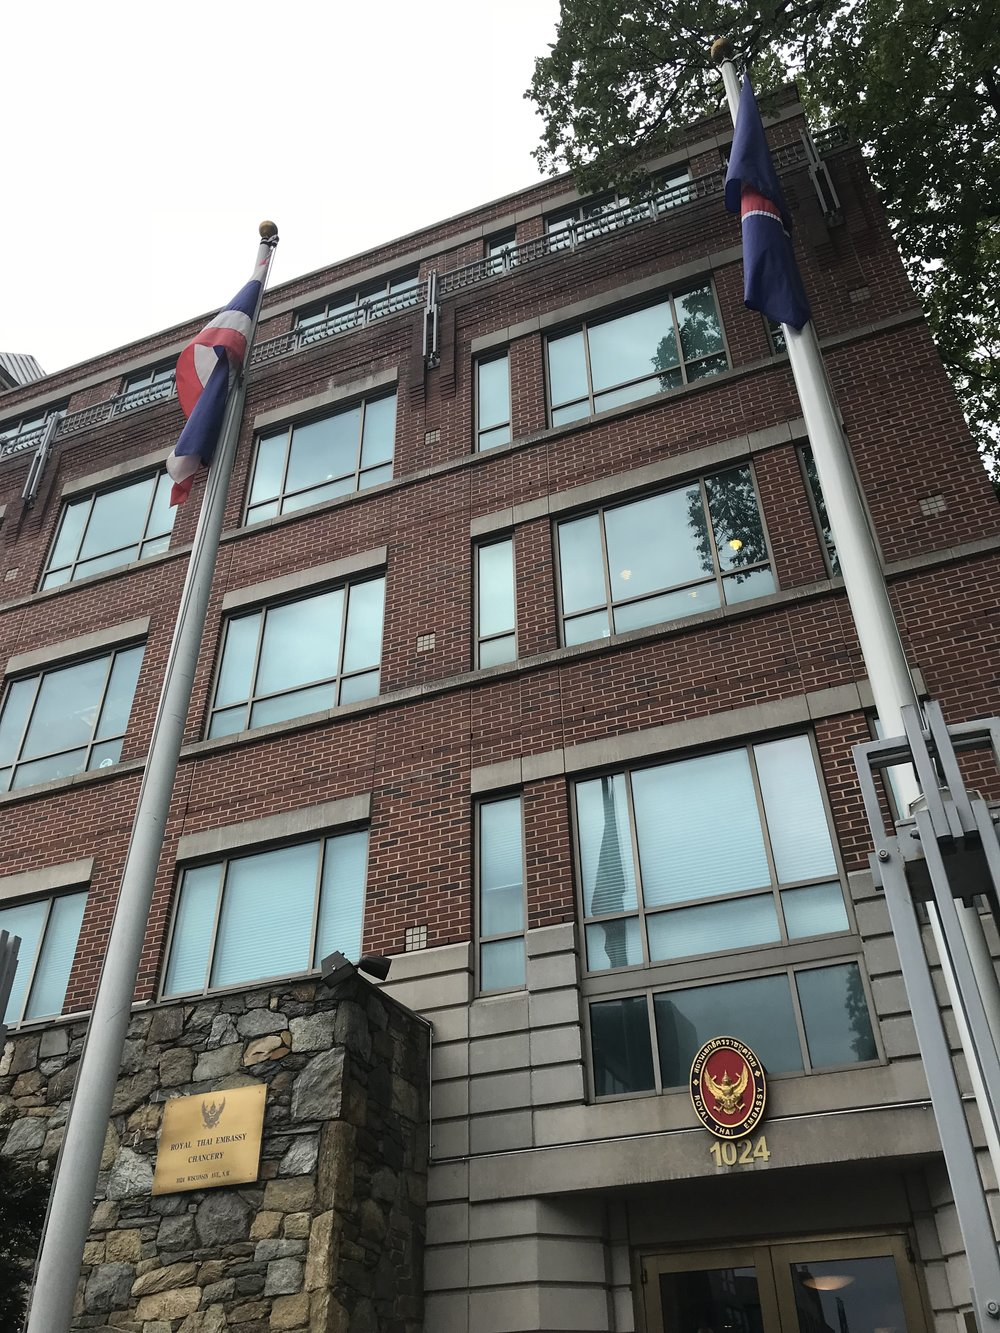 The Royal Thai Embassy.